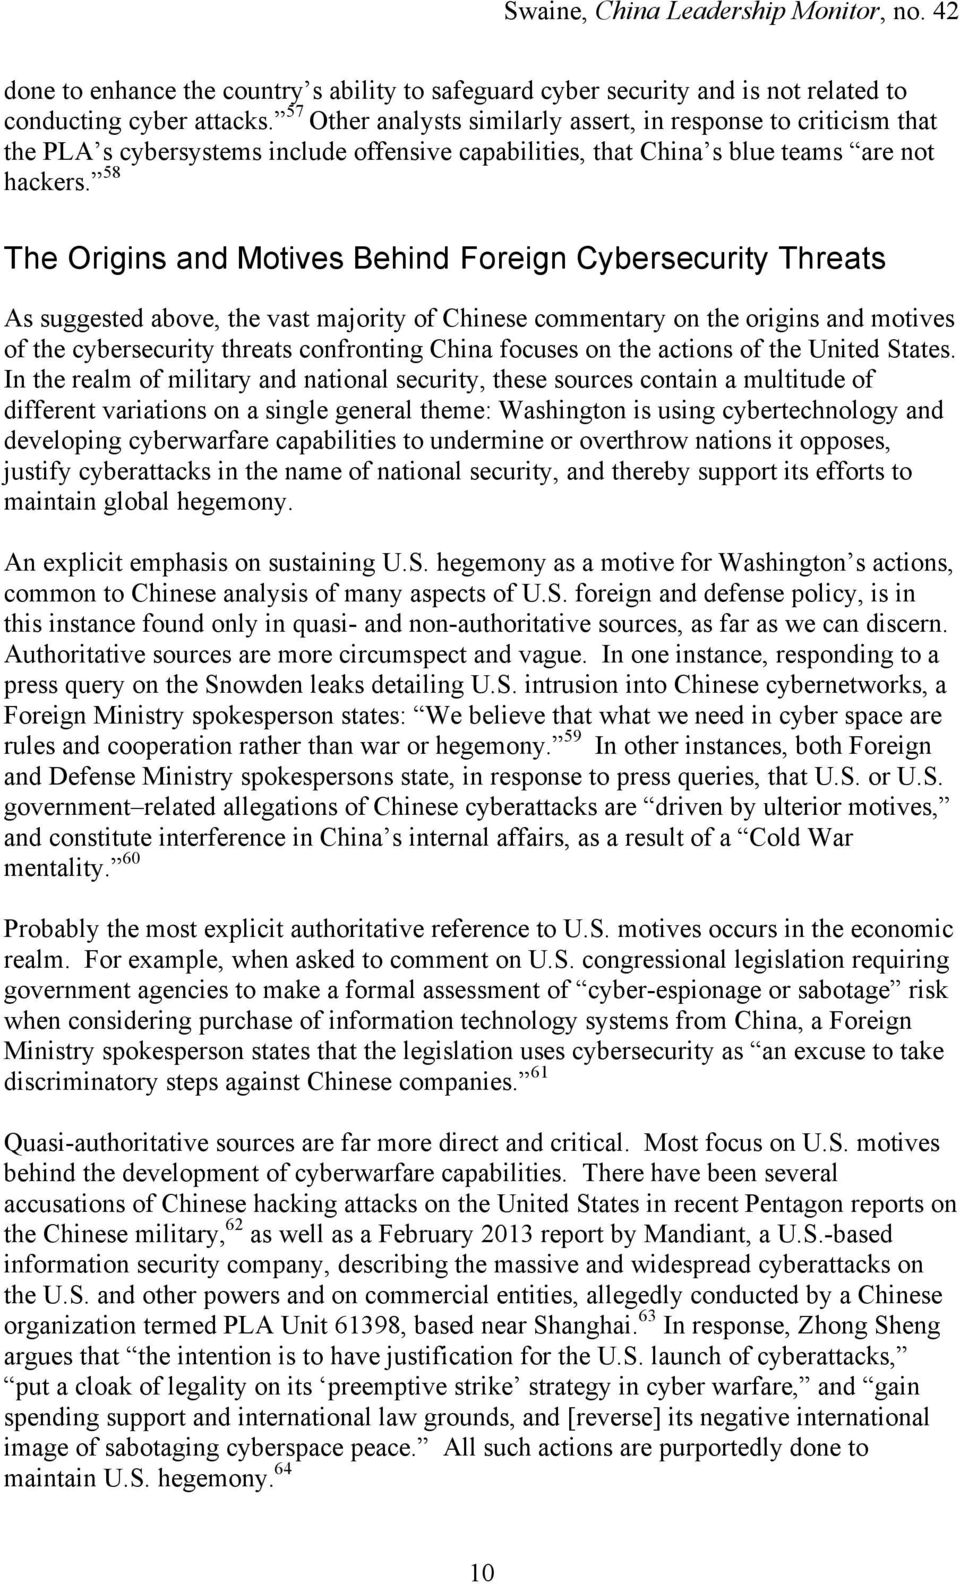 58 The Origins and Motives Behind Foreign Cybersecurity Threats As suggested above, the vast majority of Chinese commentary on the origins and motives of the cybersecurity threats confronting China